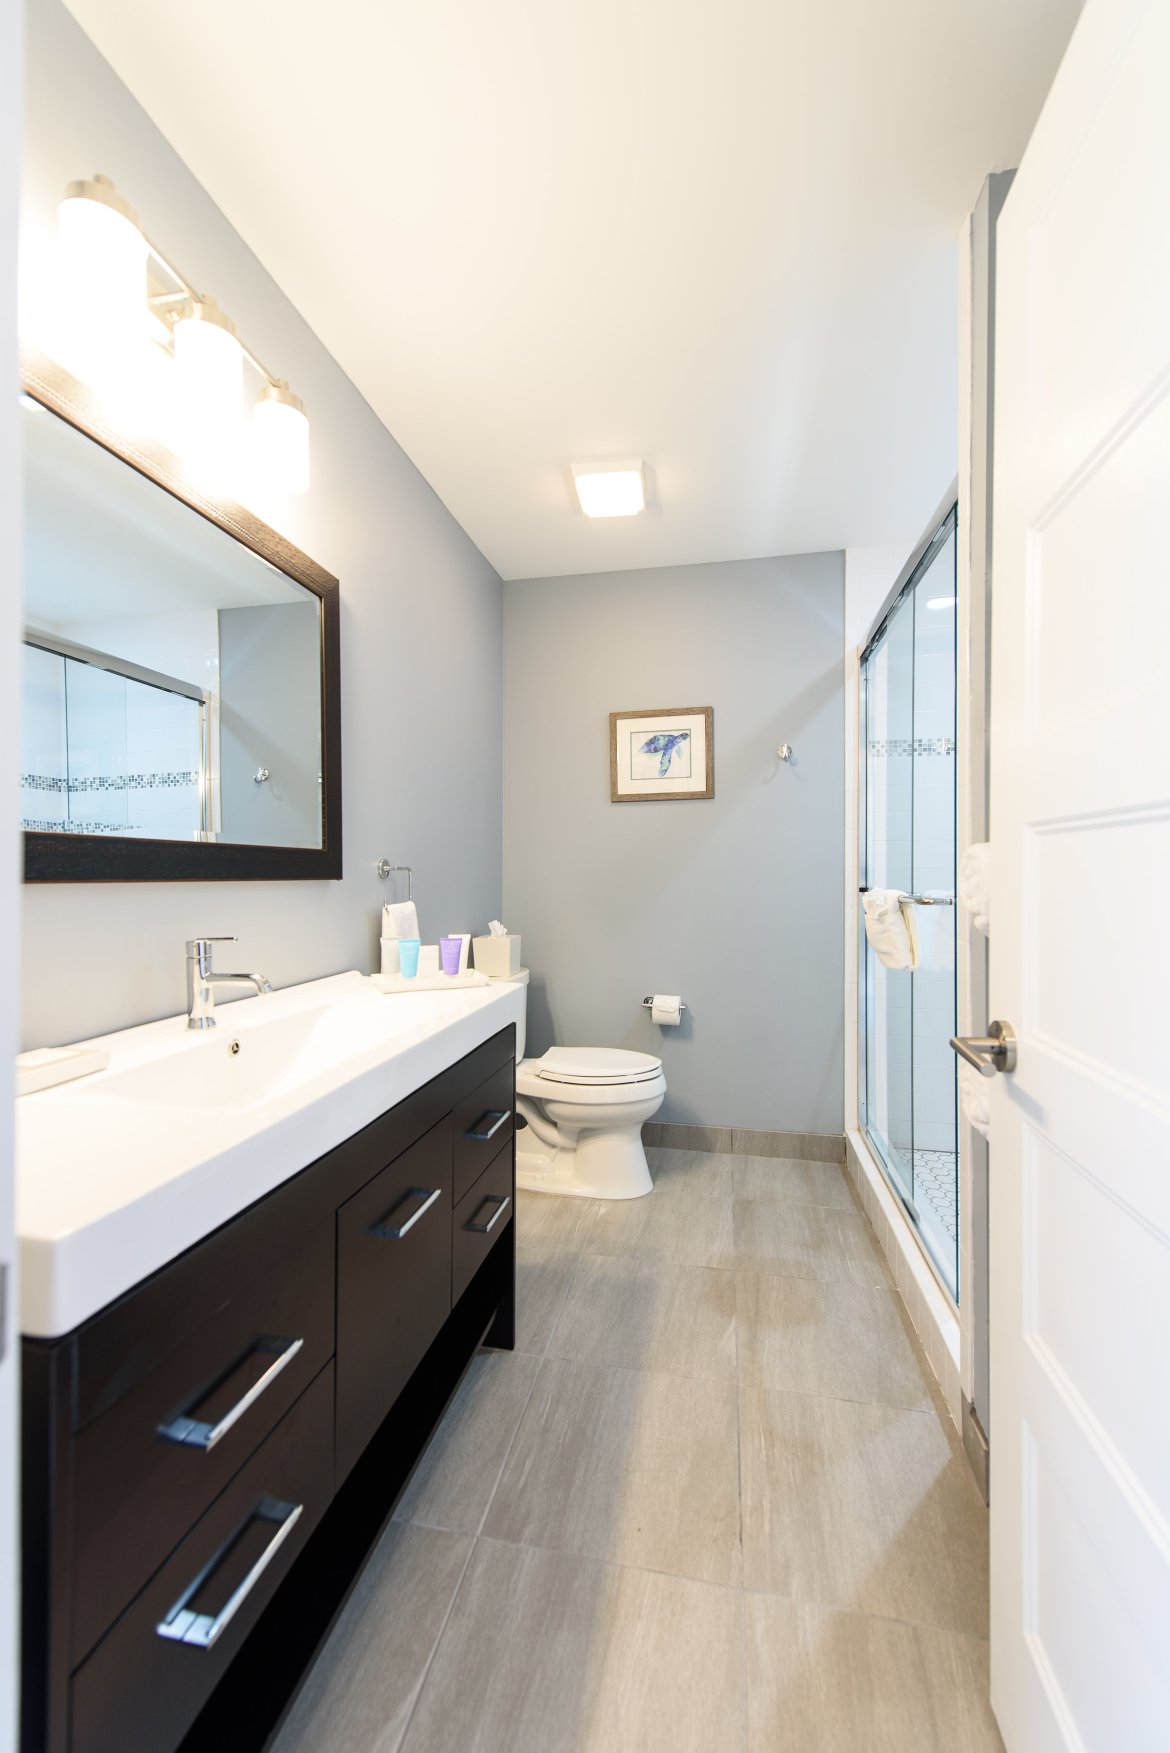 Bathroom with full amenities